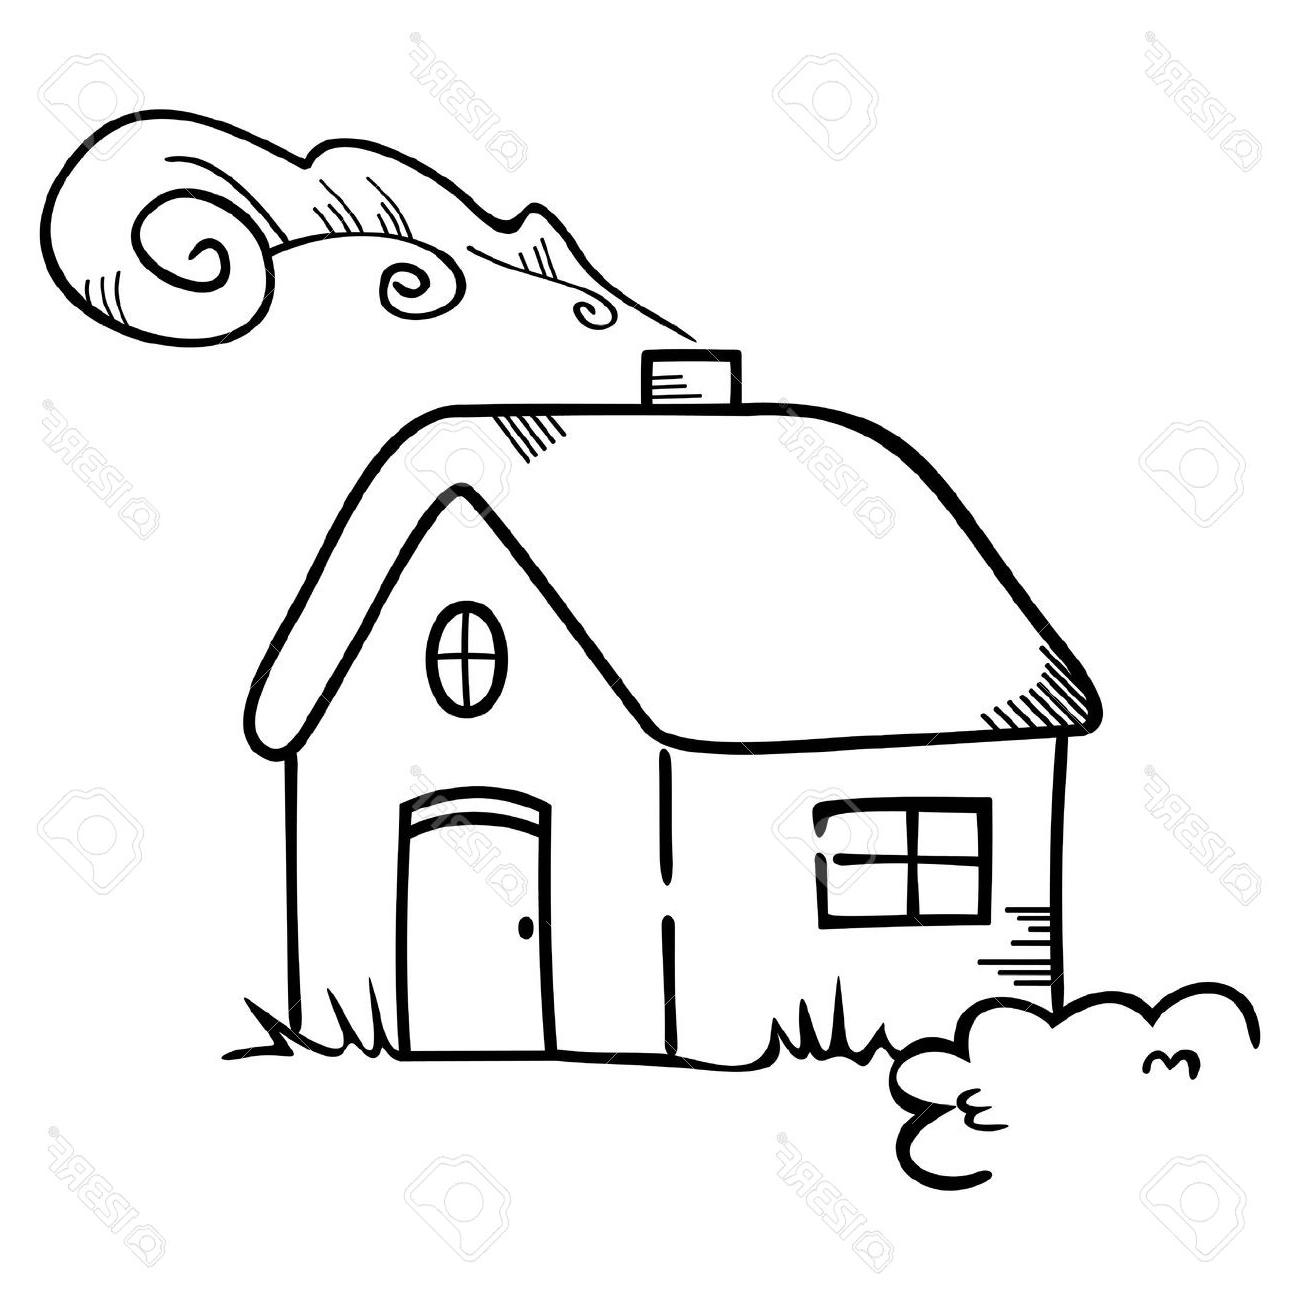 black and white cartoon house topsimages Black and White Cartoon Drawings black and white house drawing at getdrawings free for personal 1300x1300 black and white